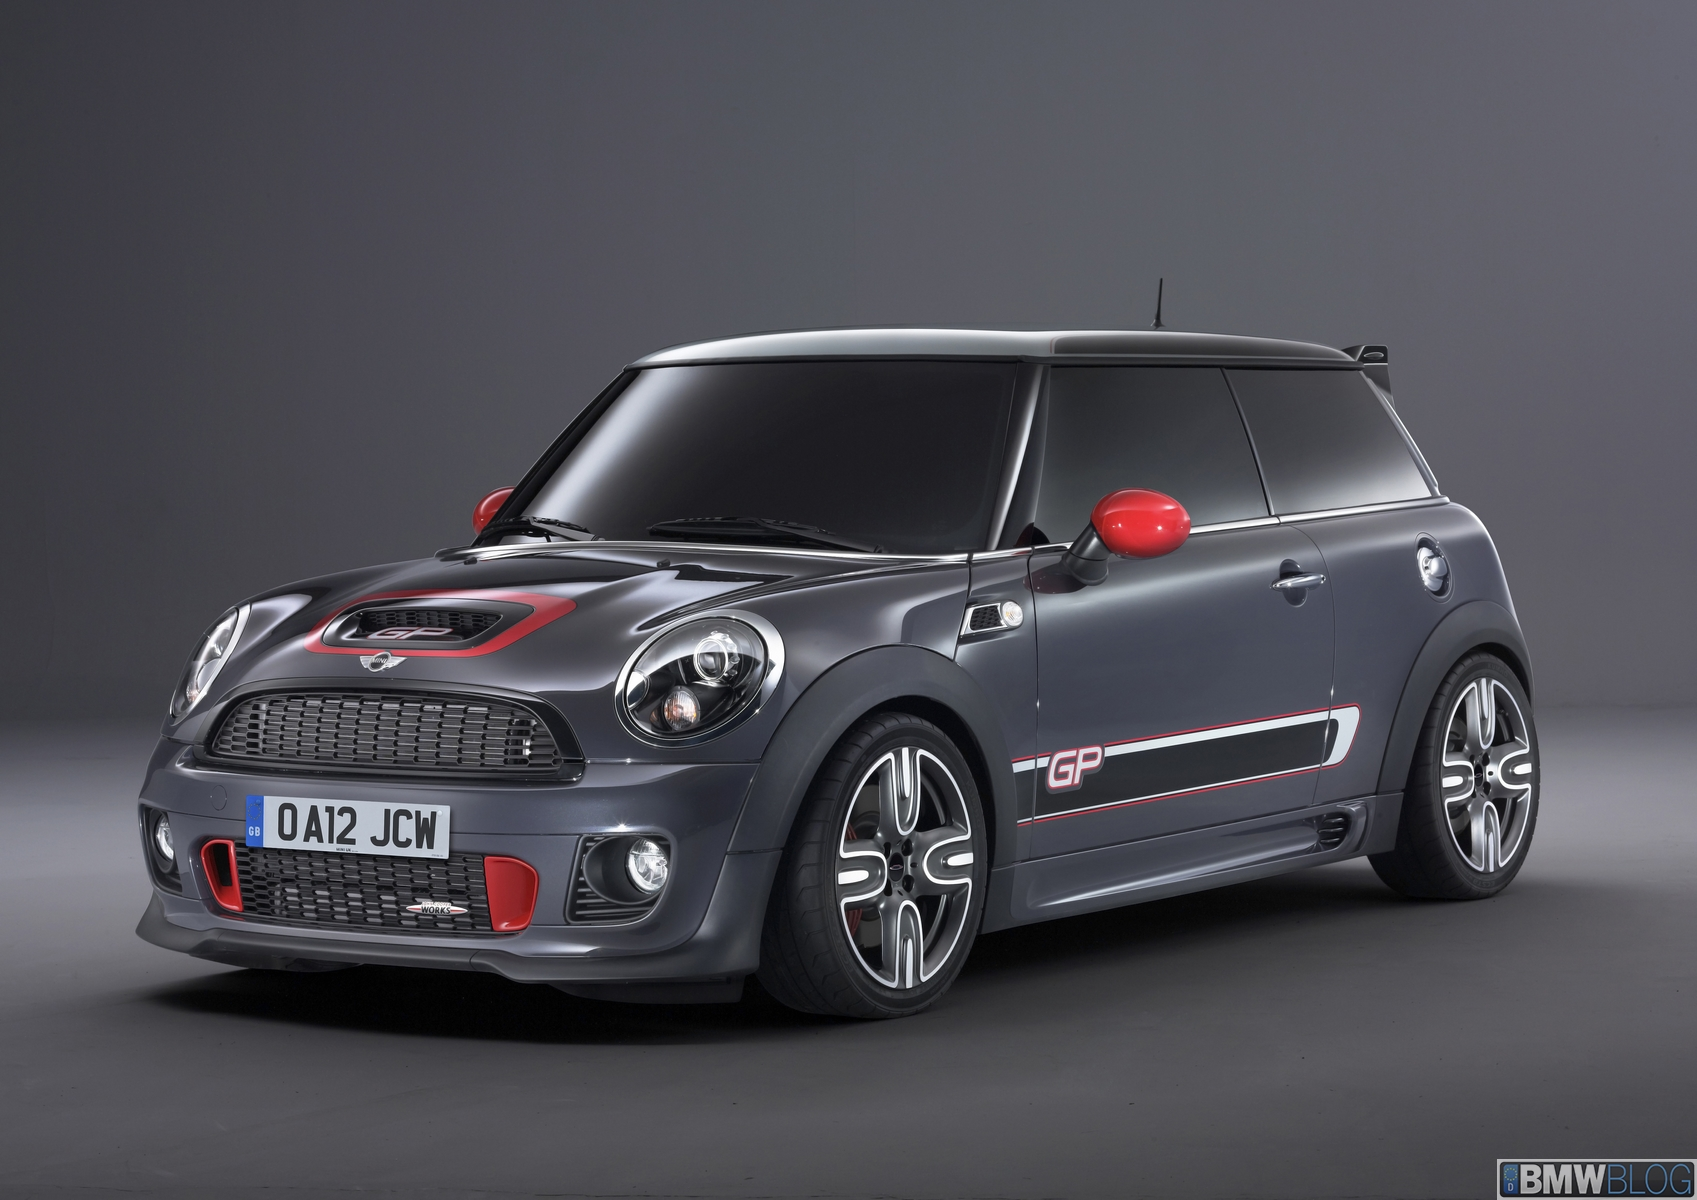 MINI John Cooper Works GP 011